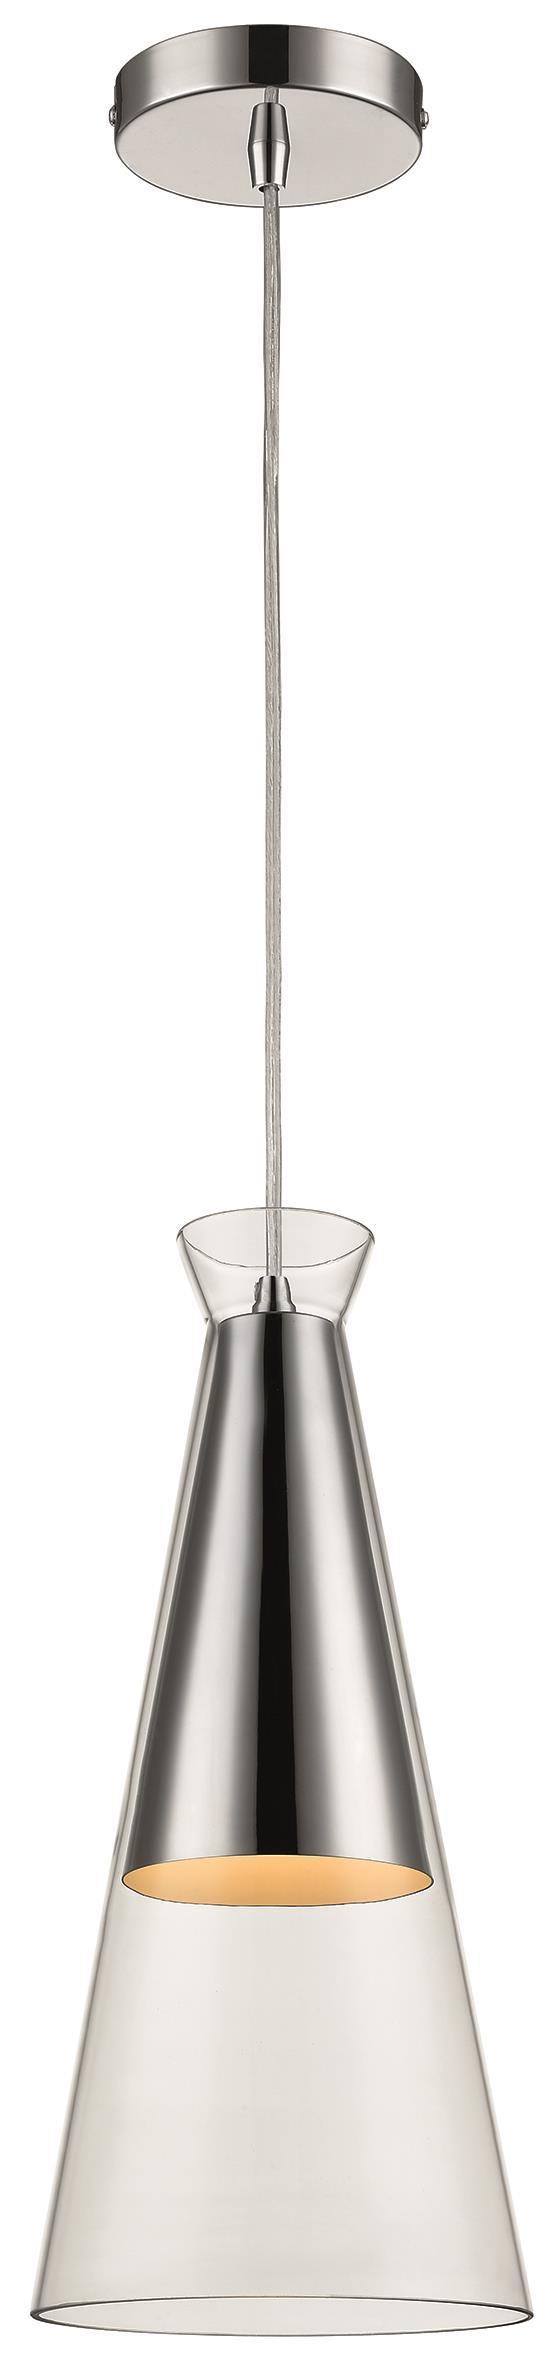 SND Lighting SND229 Kerry Cone Single Pendant Clear - SND Electrical Ltd